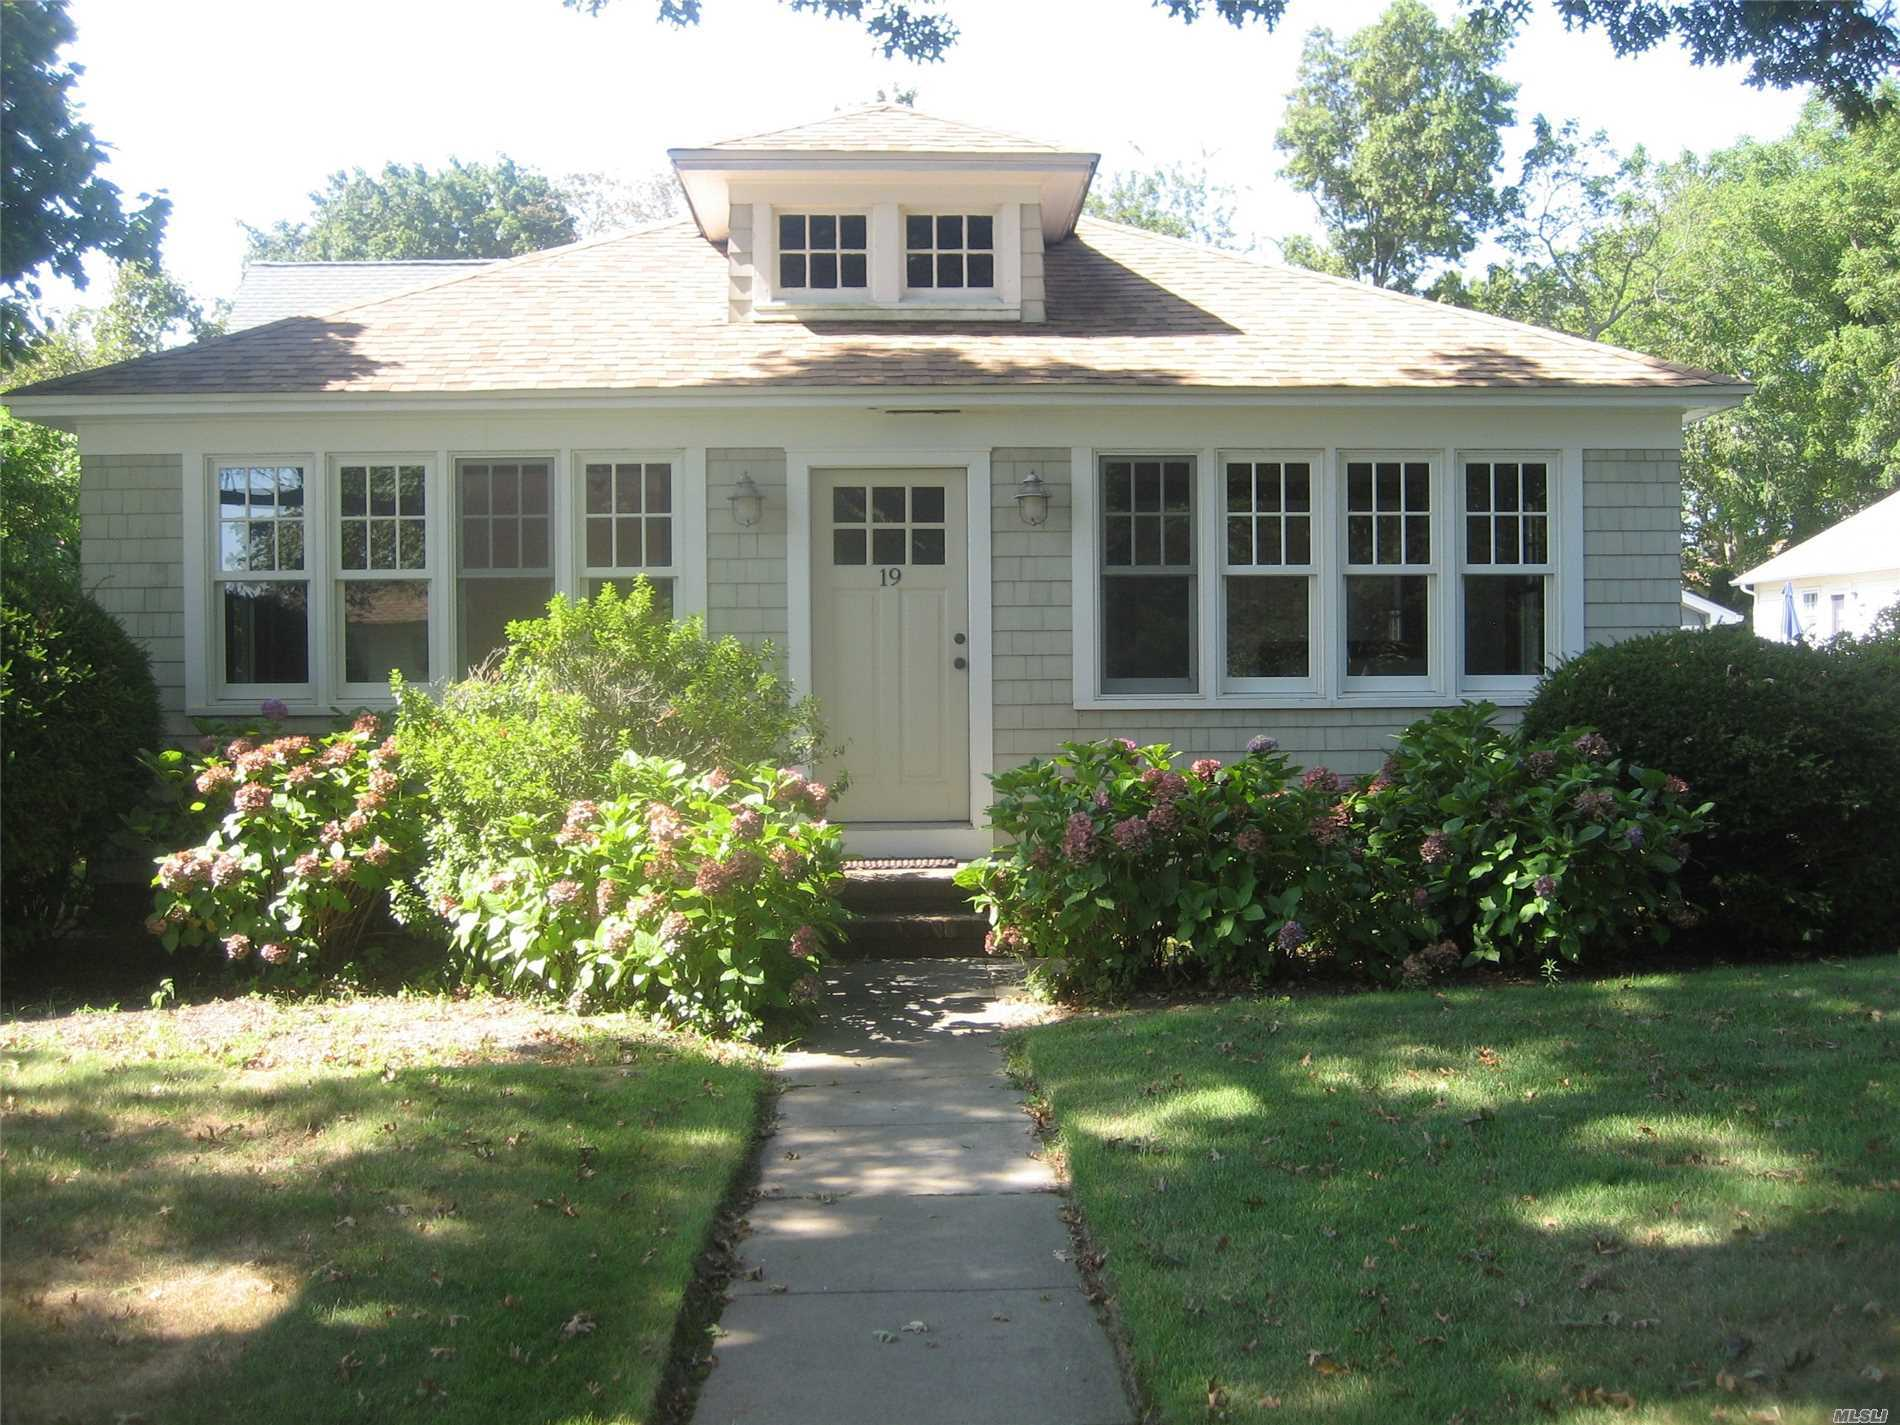 Sunny Waterview Cottage - One House From Sandy Peconic Bay Beach - Updated Kitchen & Bath, Living Room, Dining Room/Sitting Room Combo. Wood Floors, Cac, Gas Heat. No Pets.